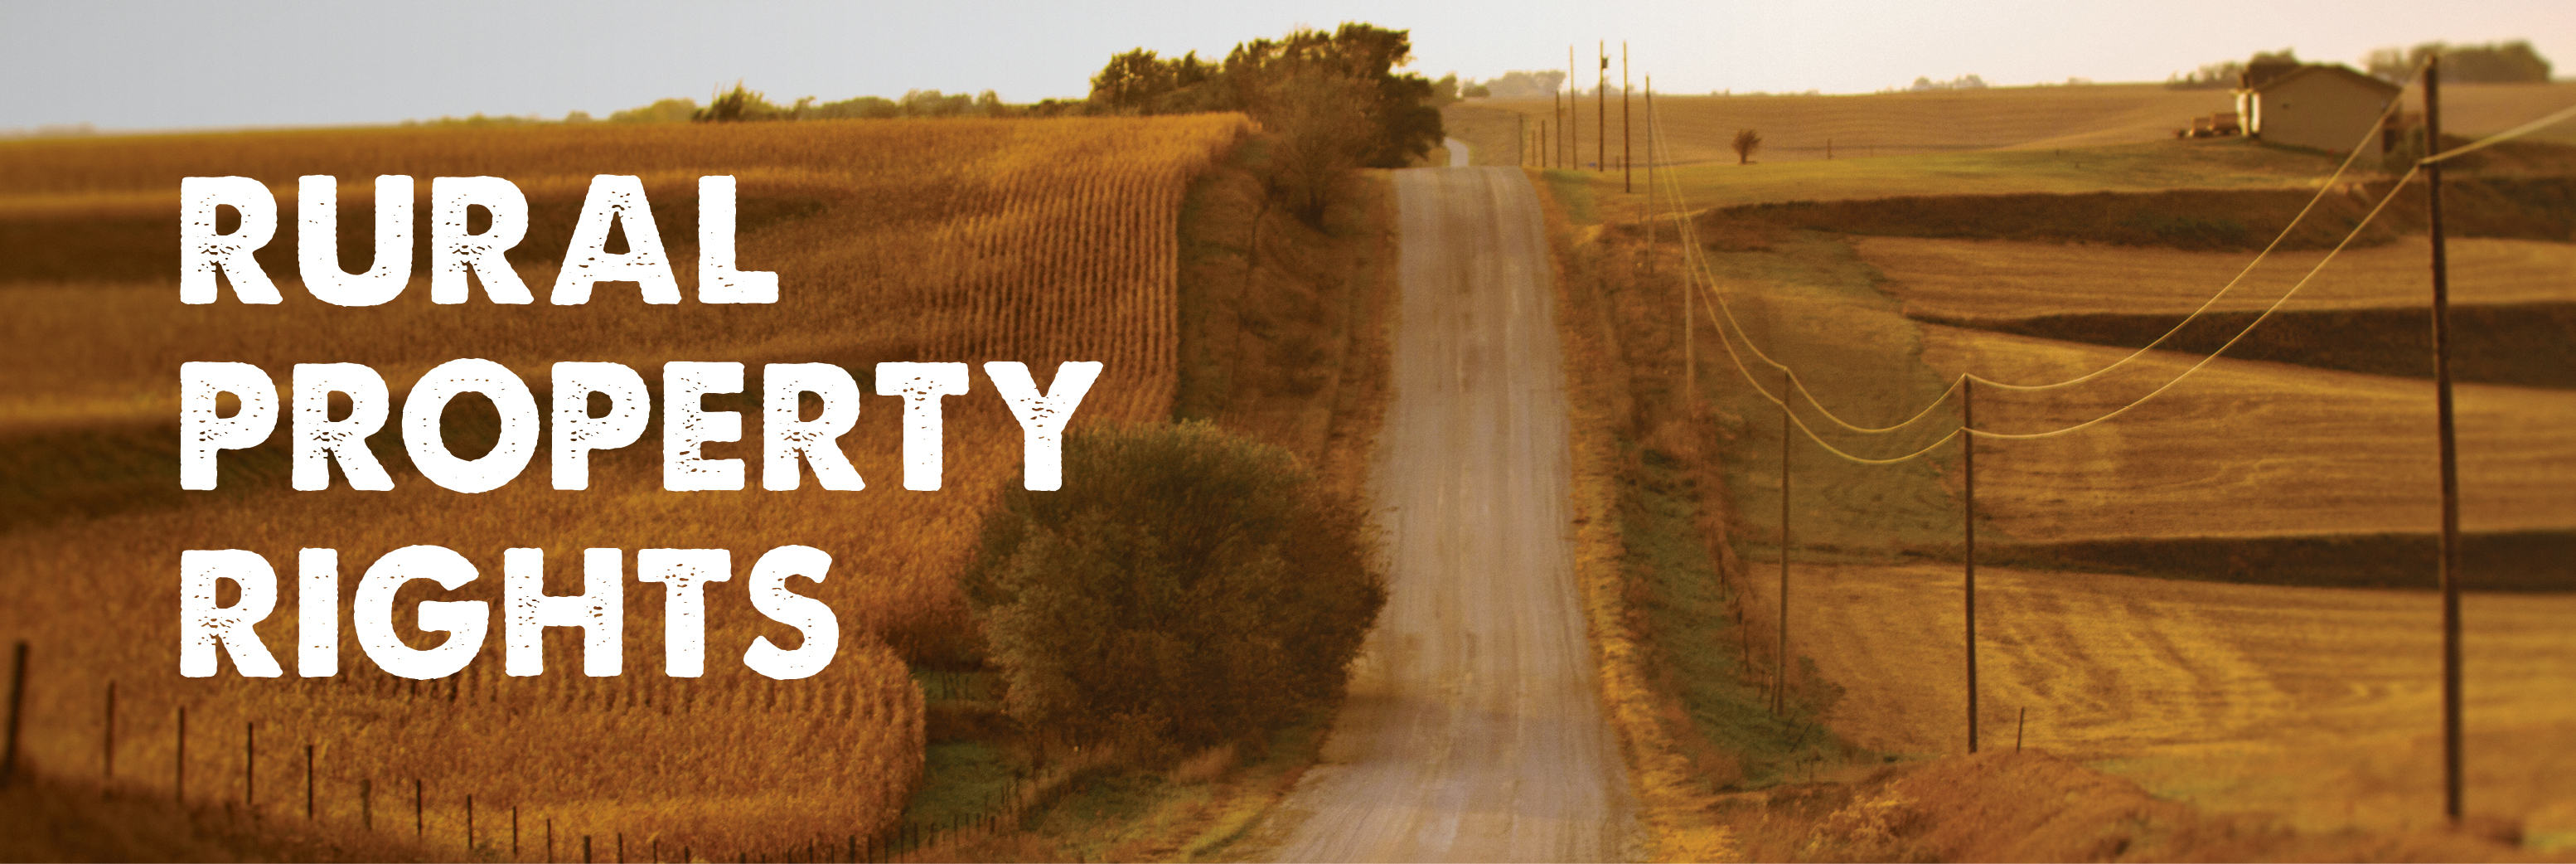 Rural Property Rights